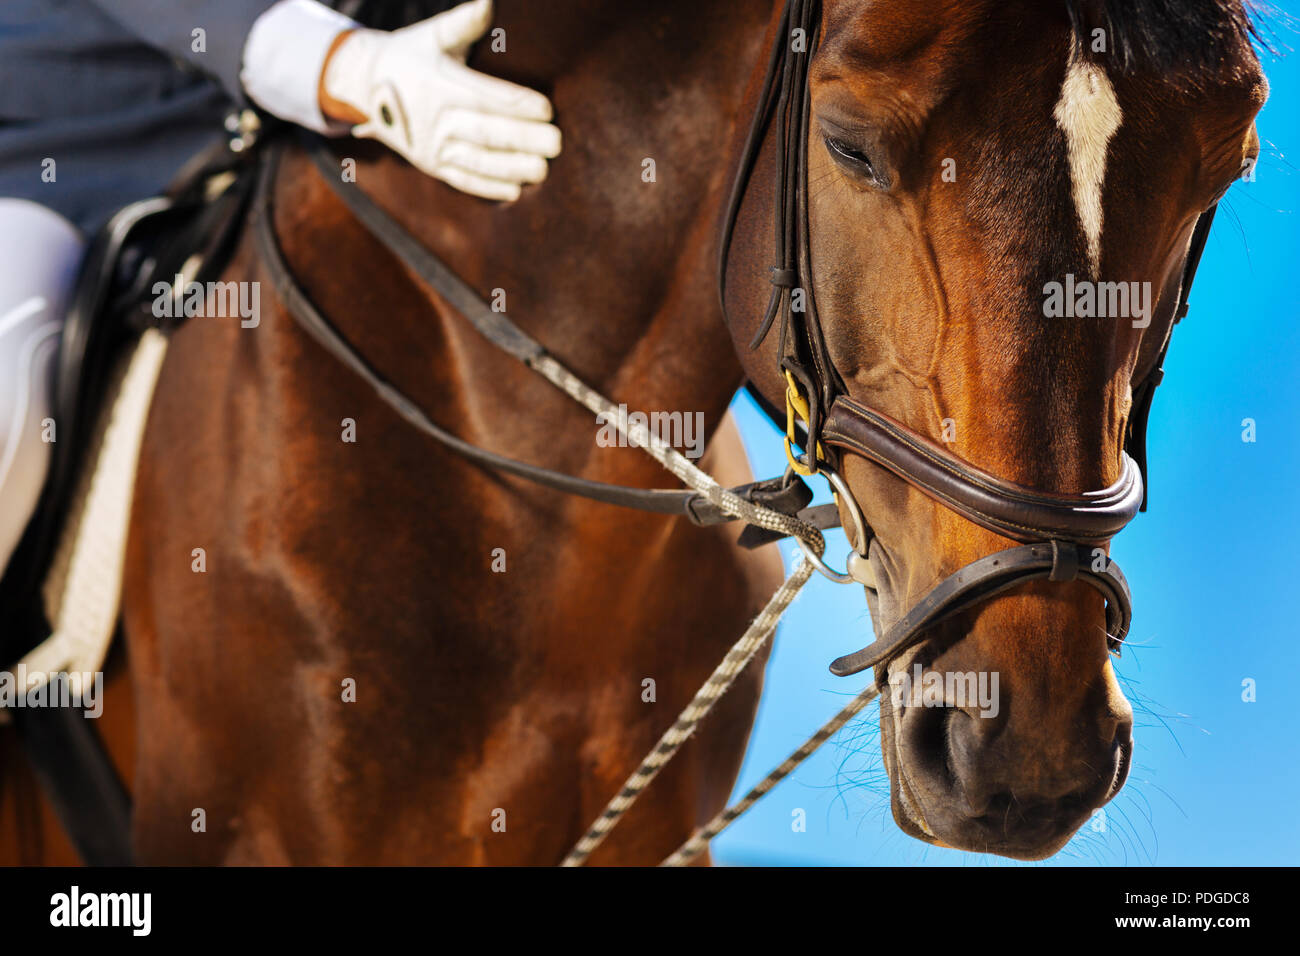 Dark-eyed brown race horse getting ready for annual horserace - Stock Image